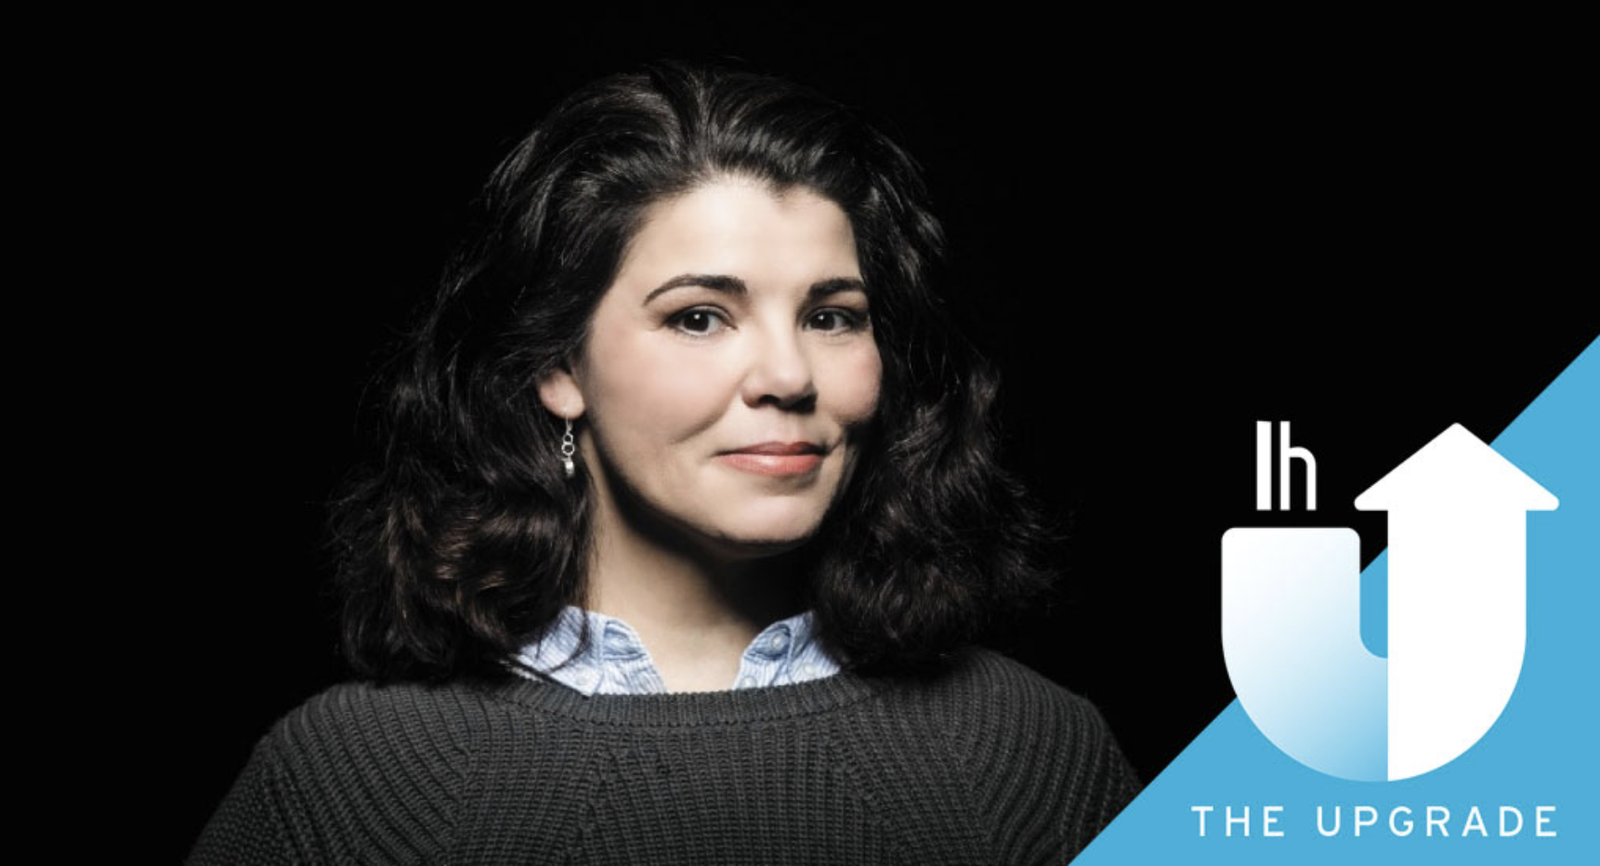 That time we learned how to have better conversations with author and journalist Celeste Headlee. (Check out the full episode here.)